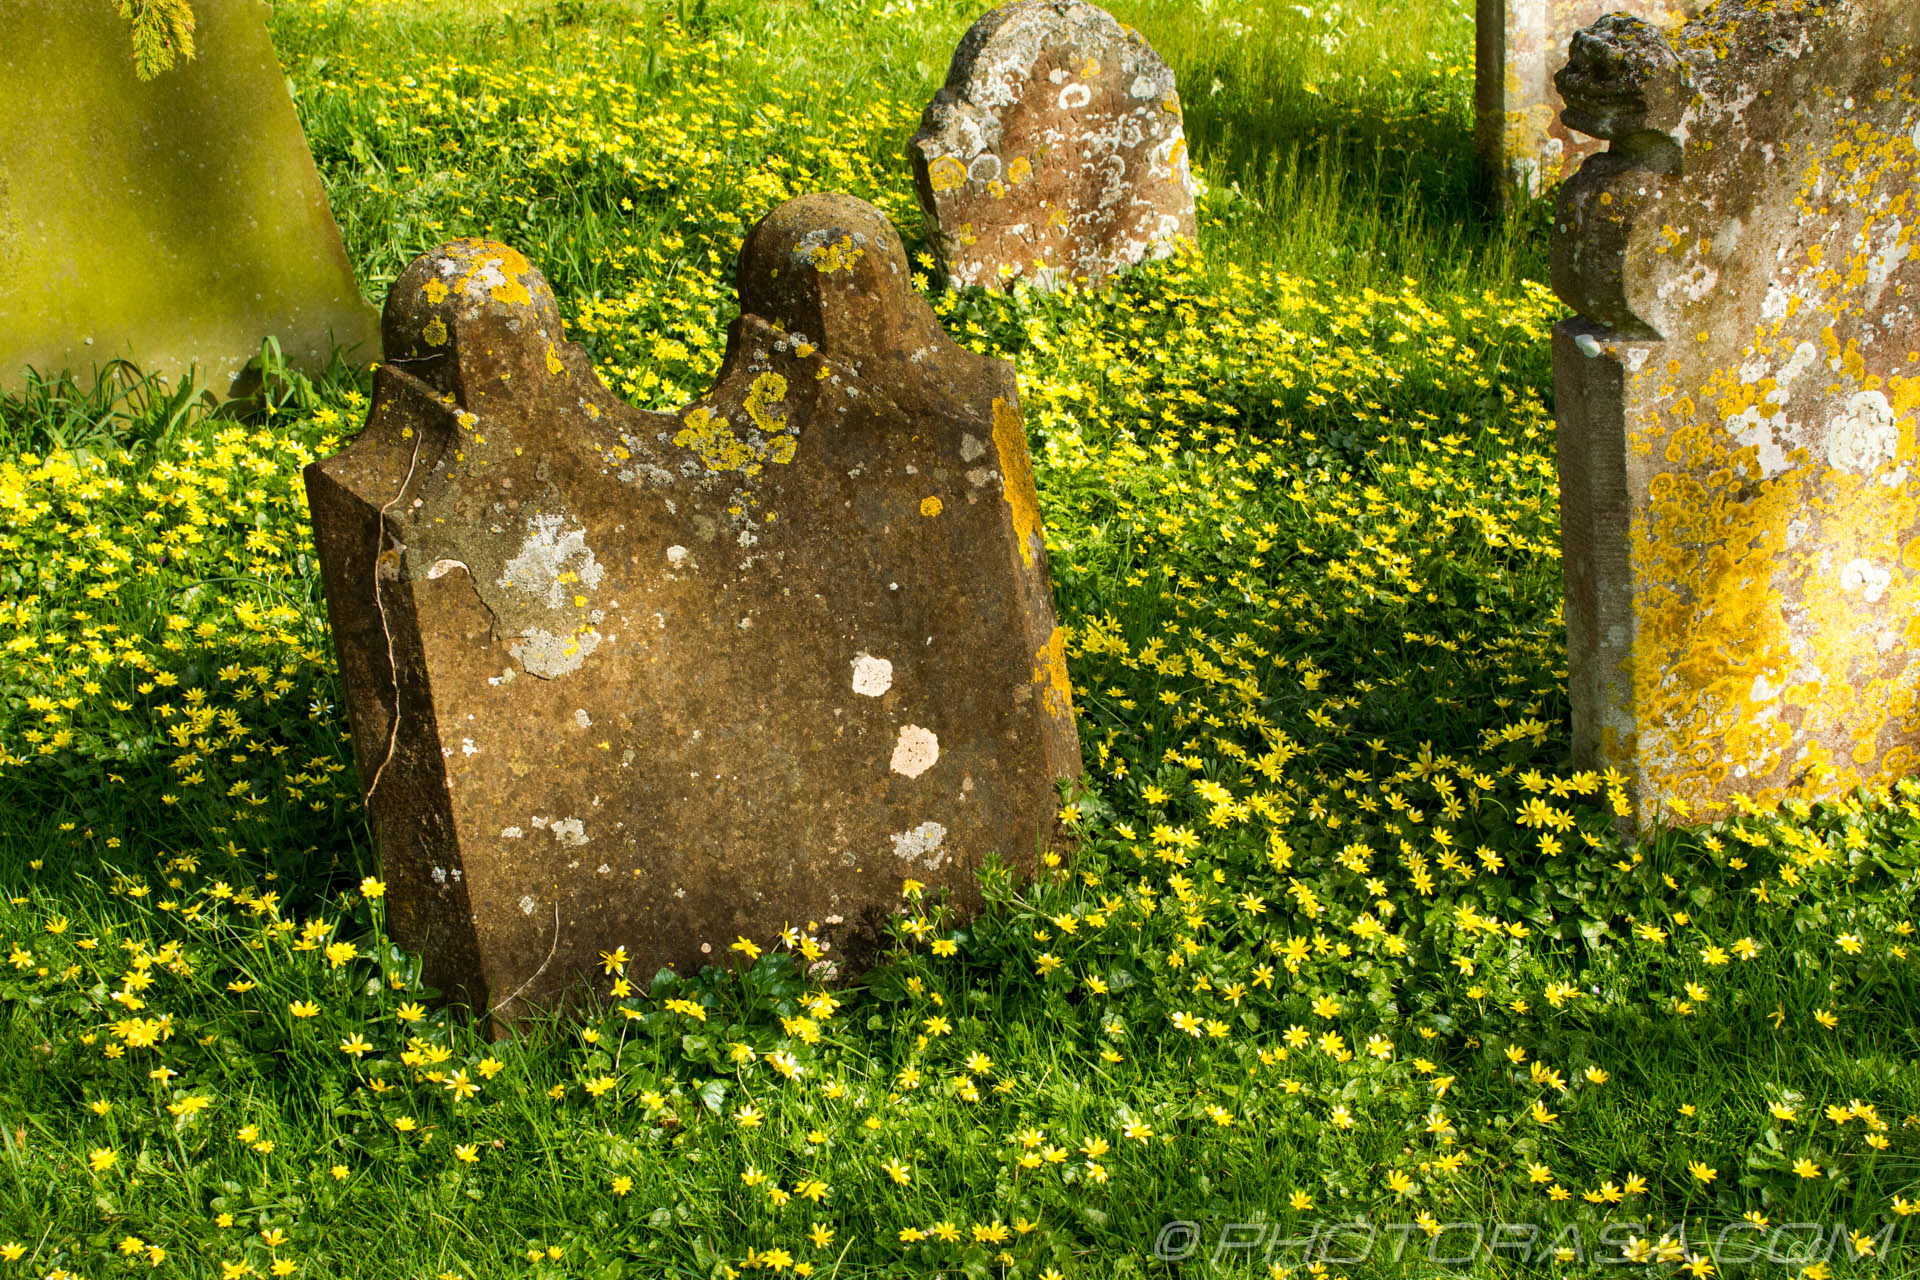 http://photorasa.com/saints-church-staplehurst-kent/graves-surrounded-by-buttercups/